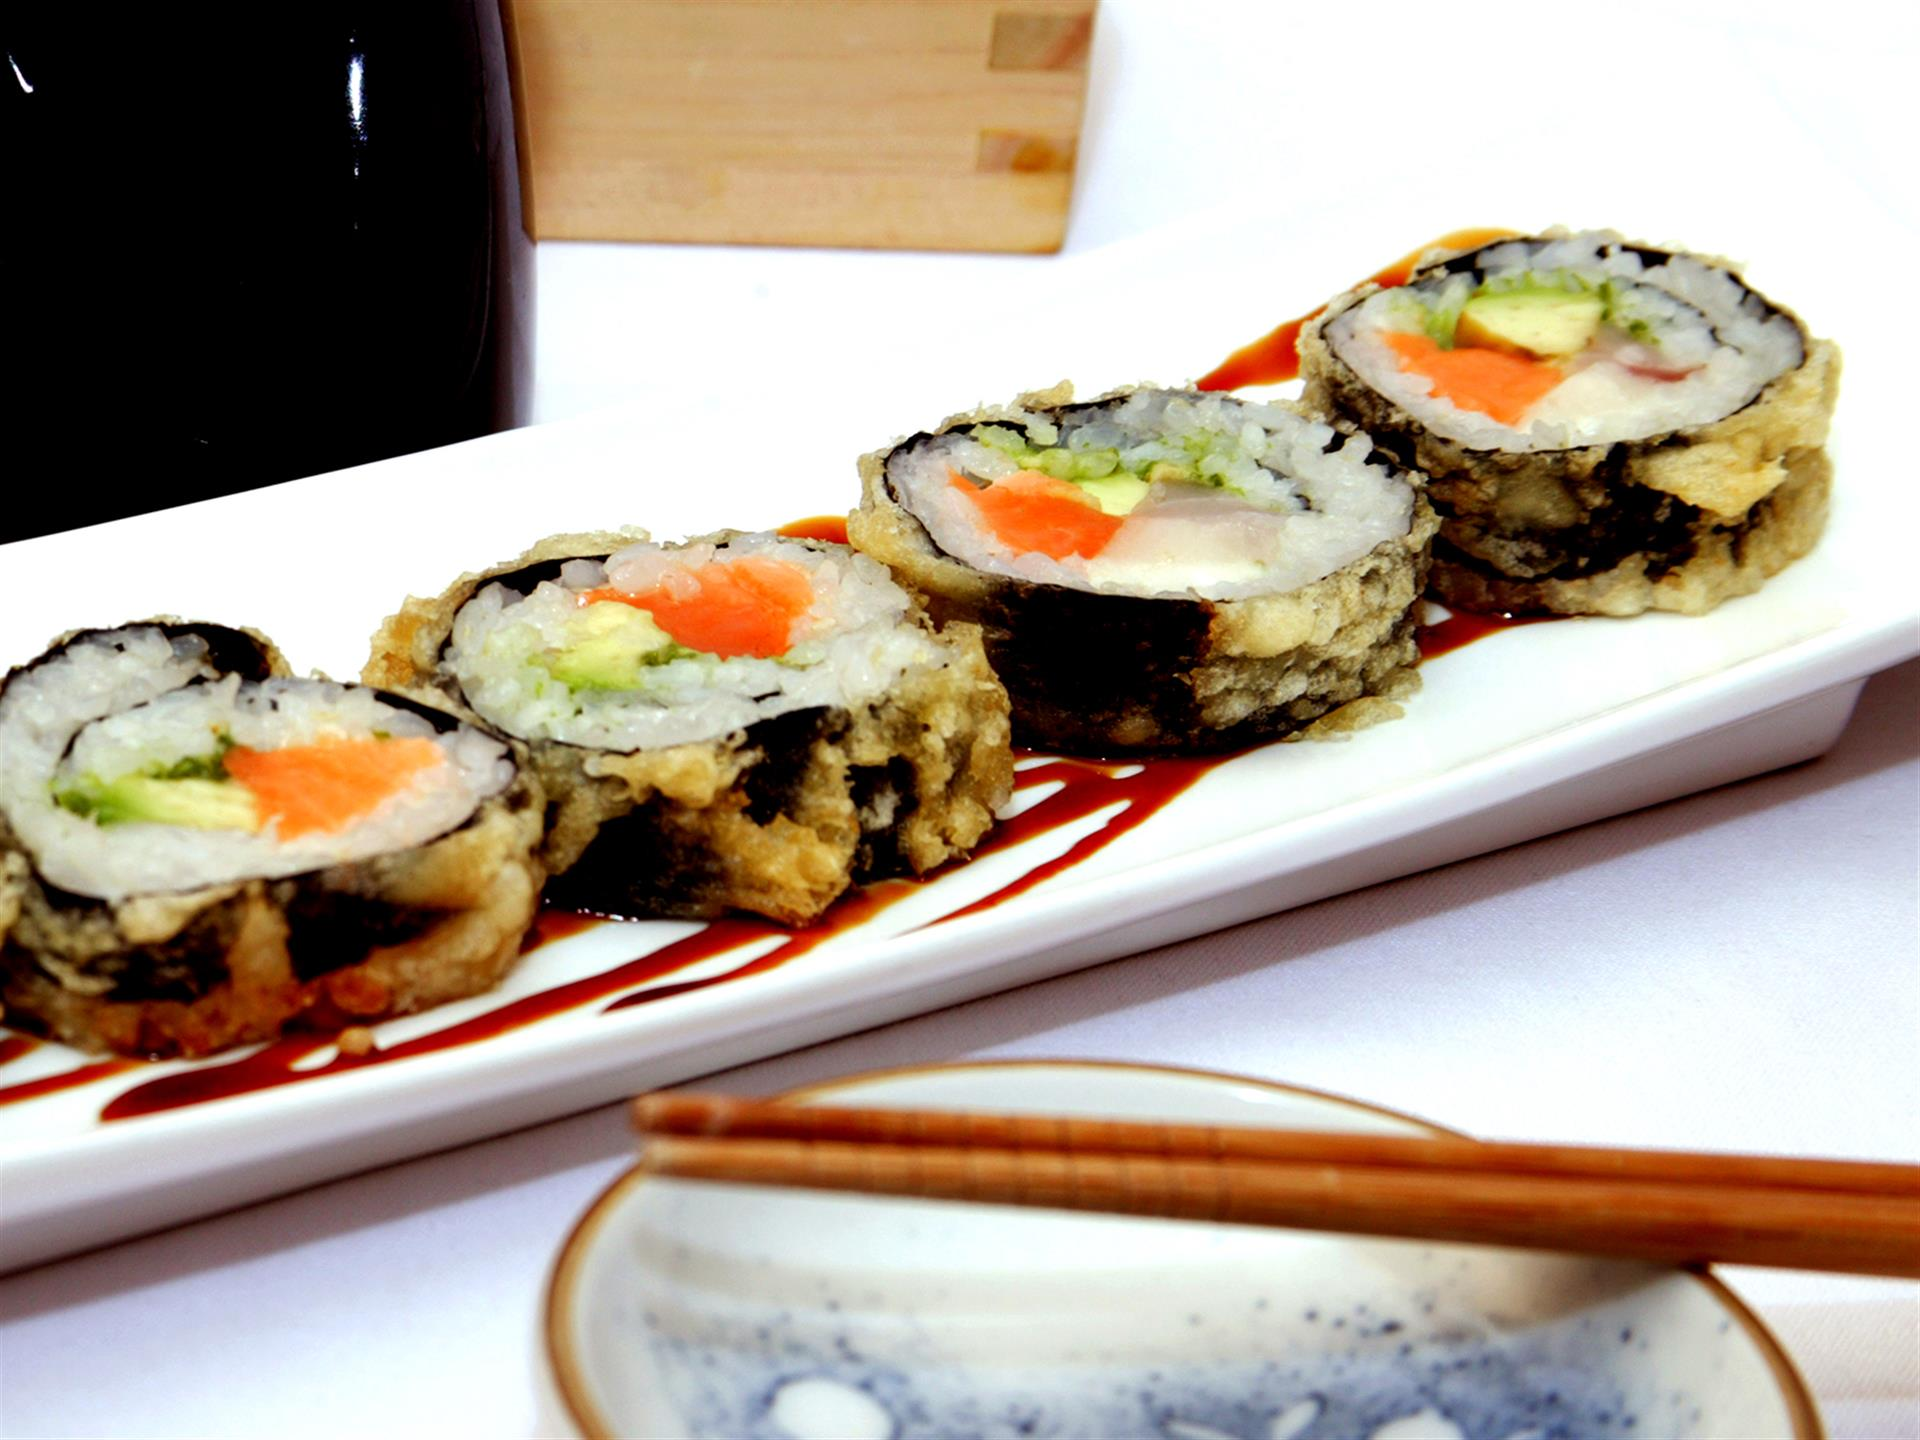 sushi rolls lined up on a plate